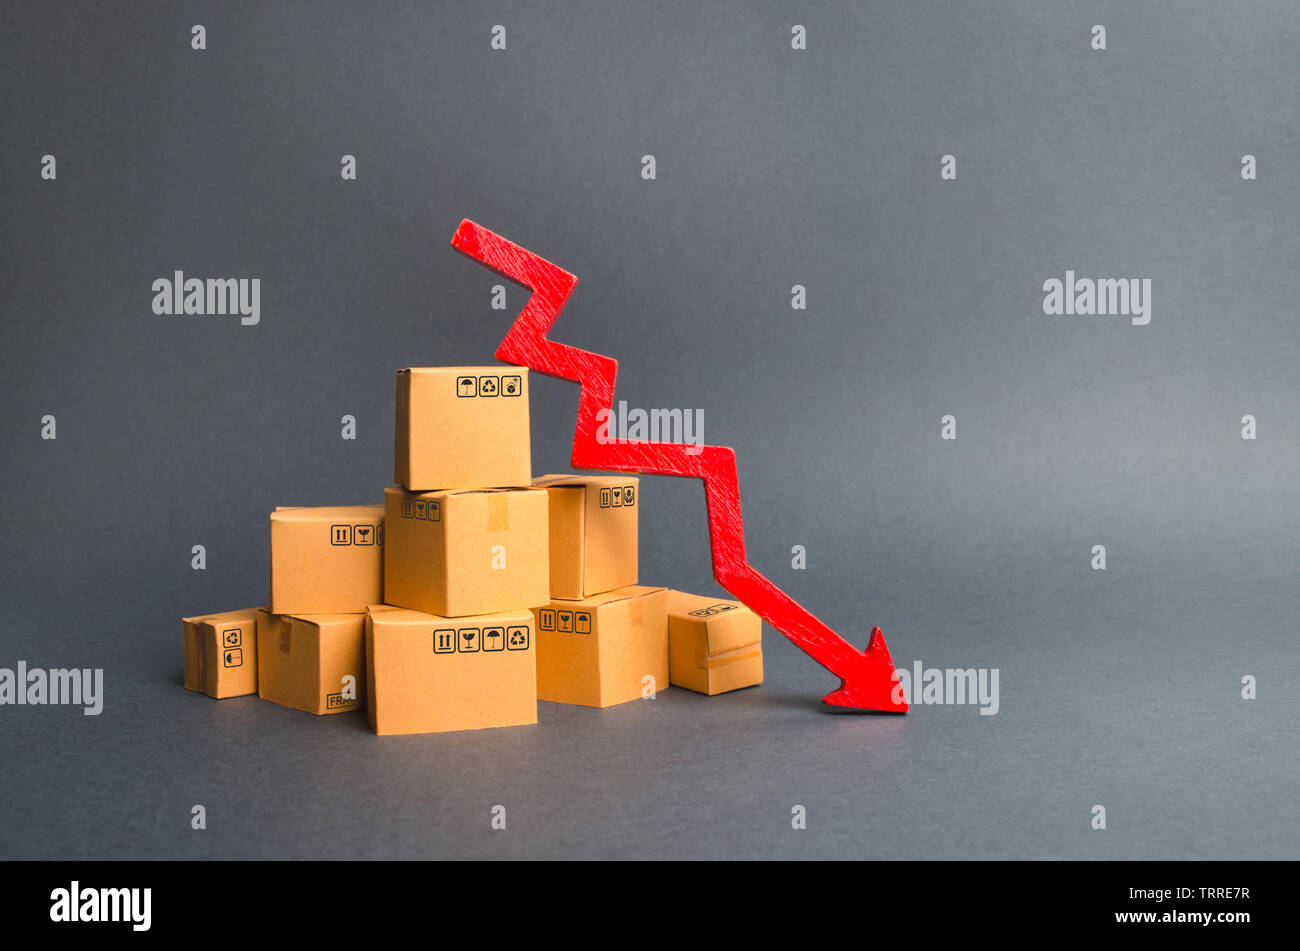 A pile of cardboard boxes and a red arrow down. The decline in the production of goods and products, the economic downturn and recession. Falling cons - Stock Image